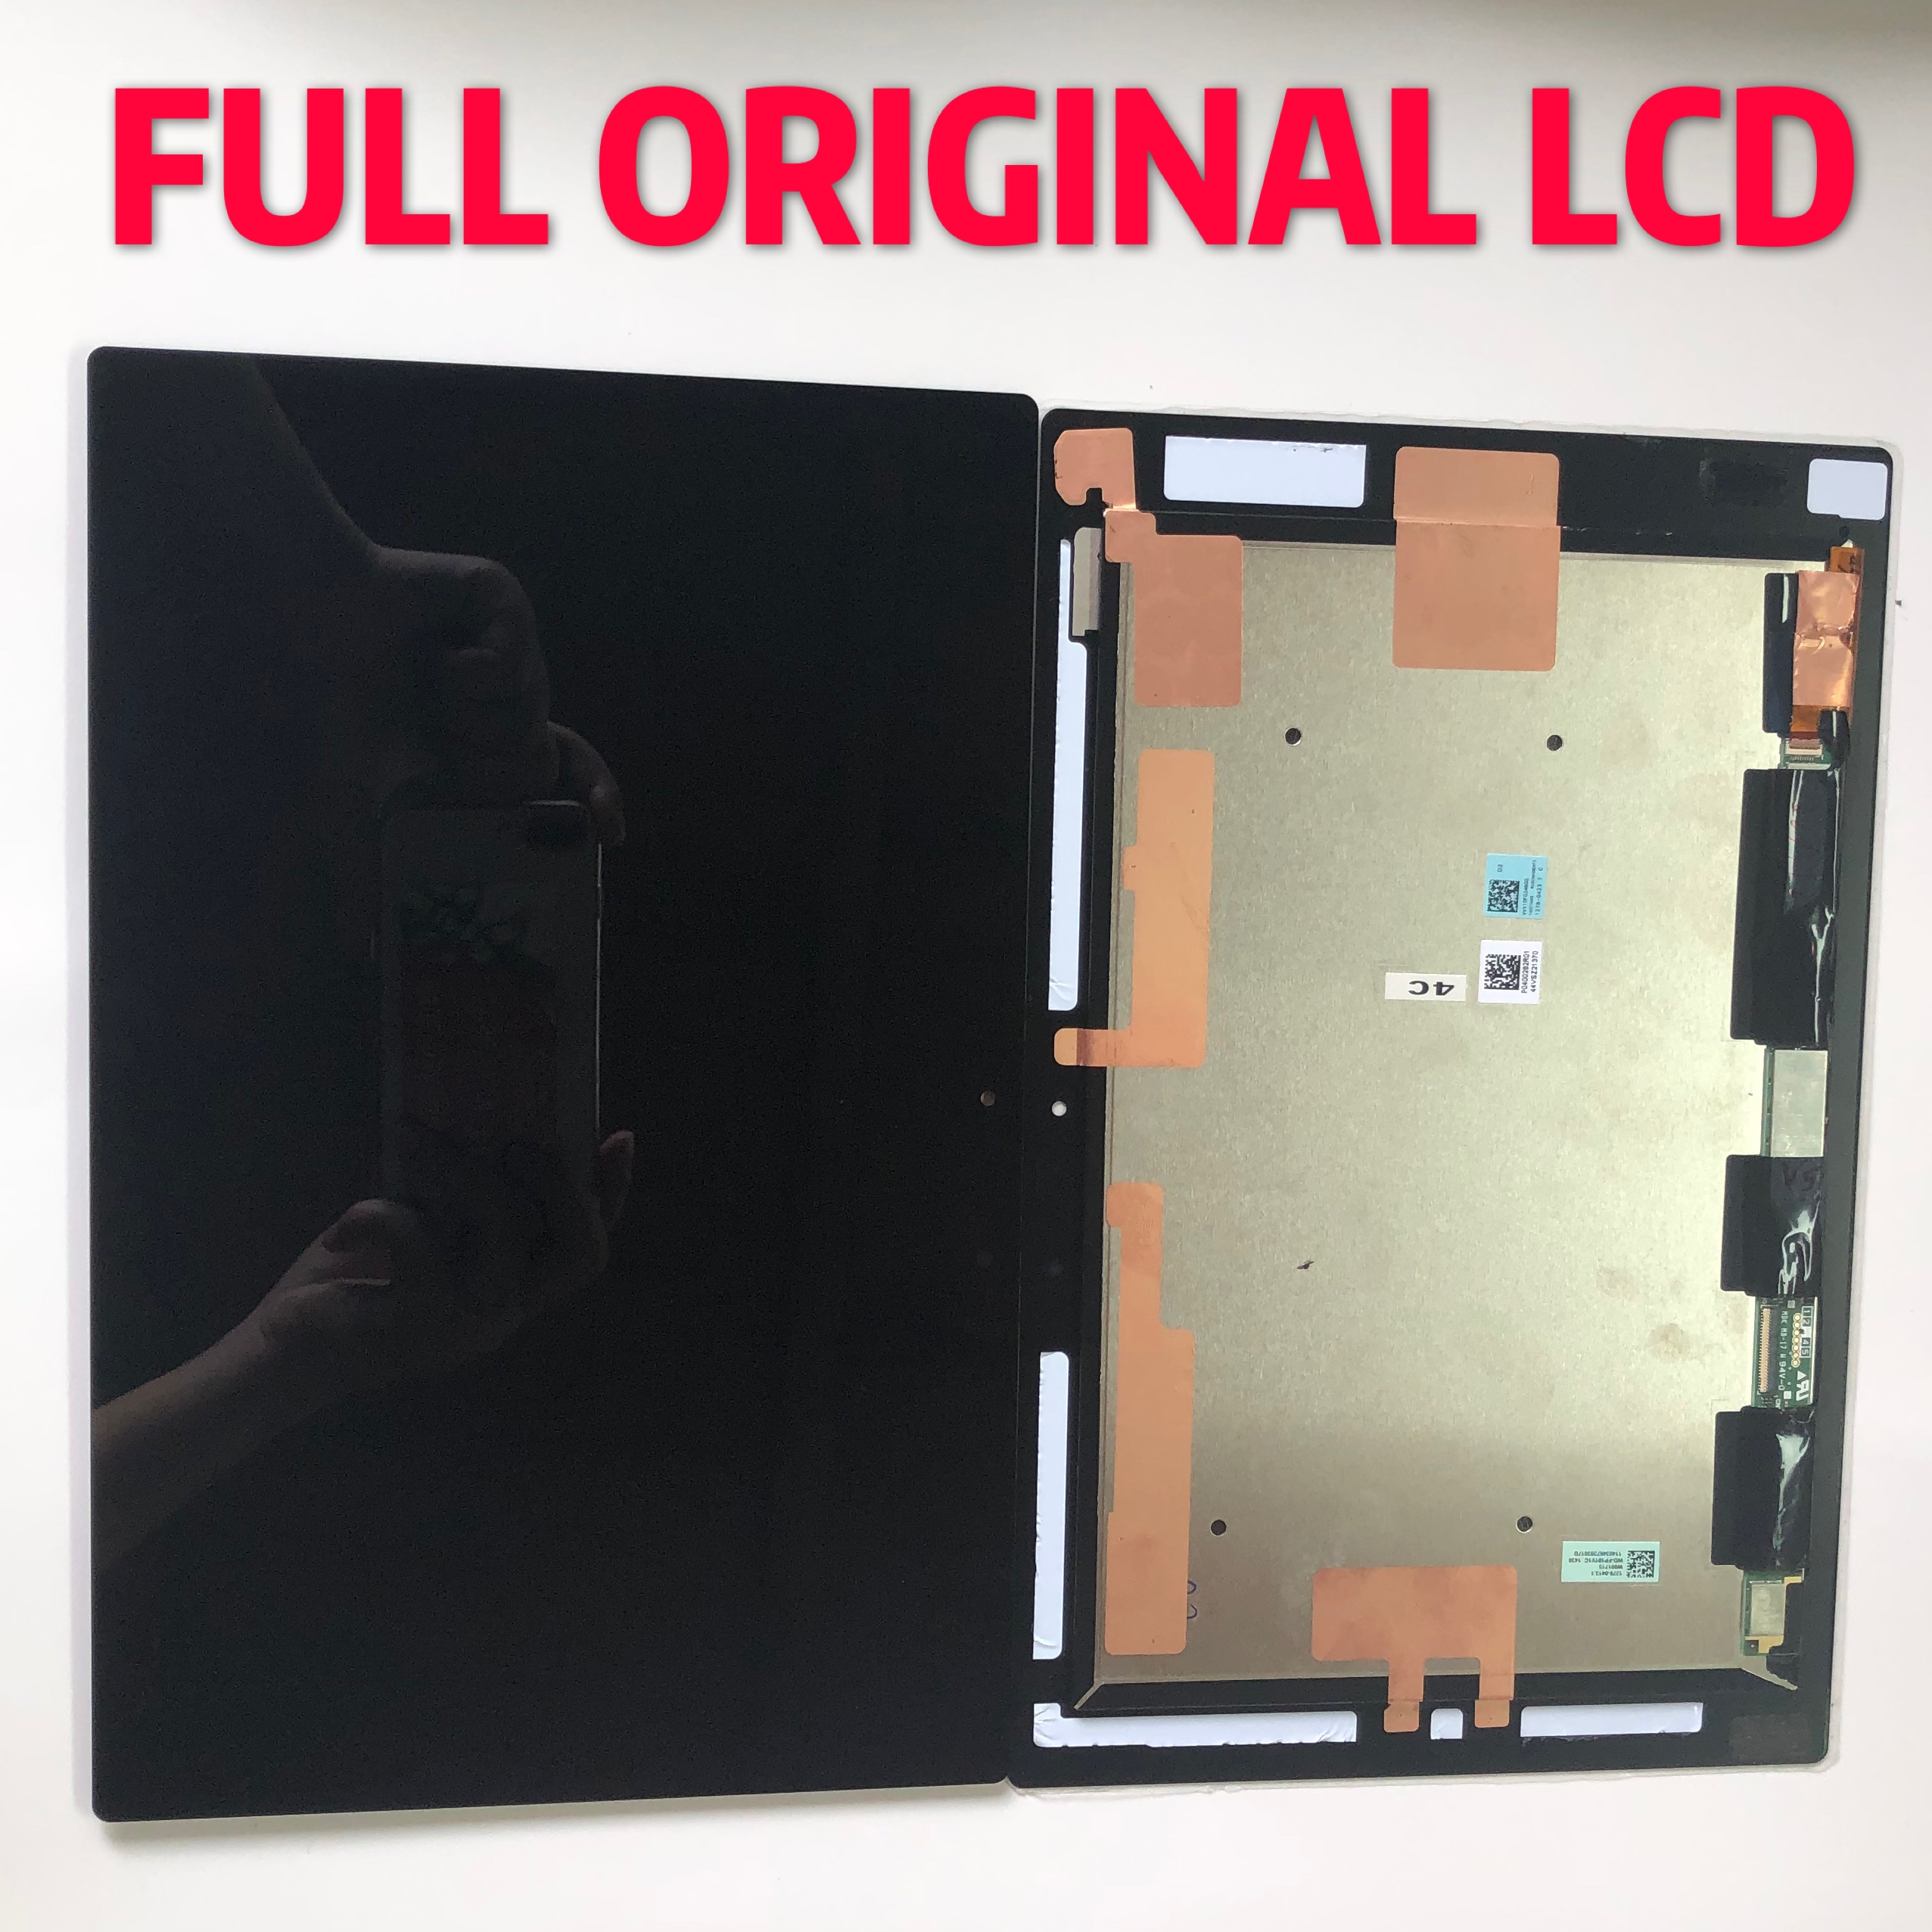 ORIGINAL LCD DISPLAY MIT TOUCH <font><b>SCREEN</b></font> DIGITIZER VOLLVERSAMMLUNG ERSATZ FÜR <font><b>SONY</b></font> <font><b>XPERIA</b></font> <font><b>TABLET</b></font> <font><b>Z2</b></font> SGP511 SGP521 image